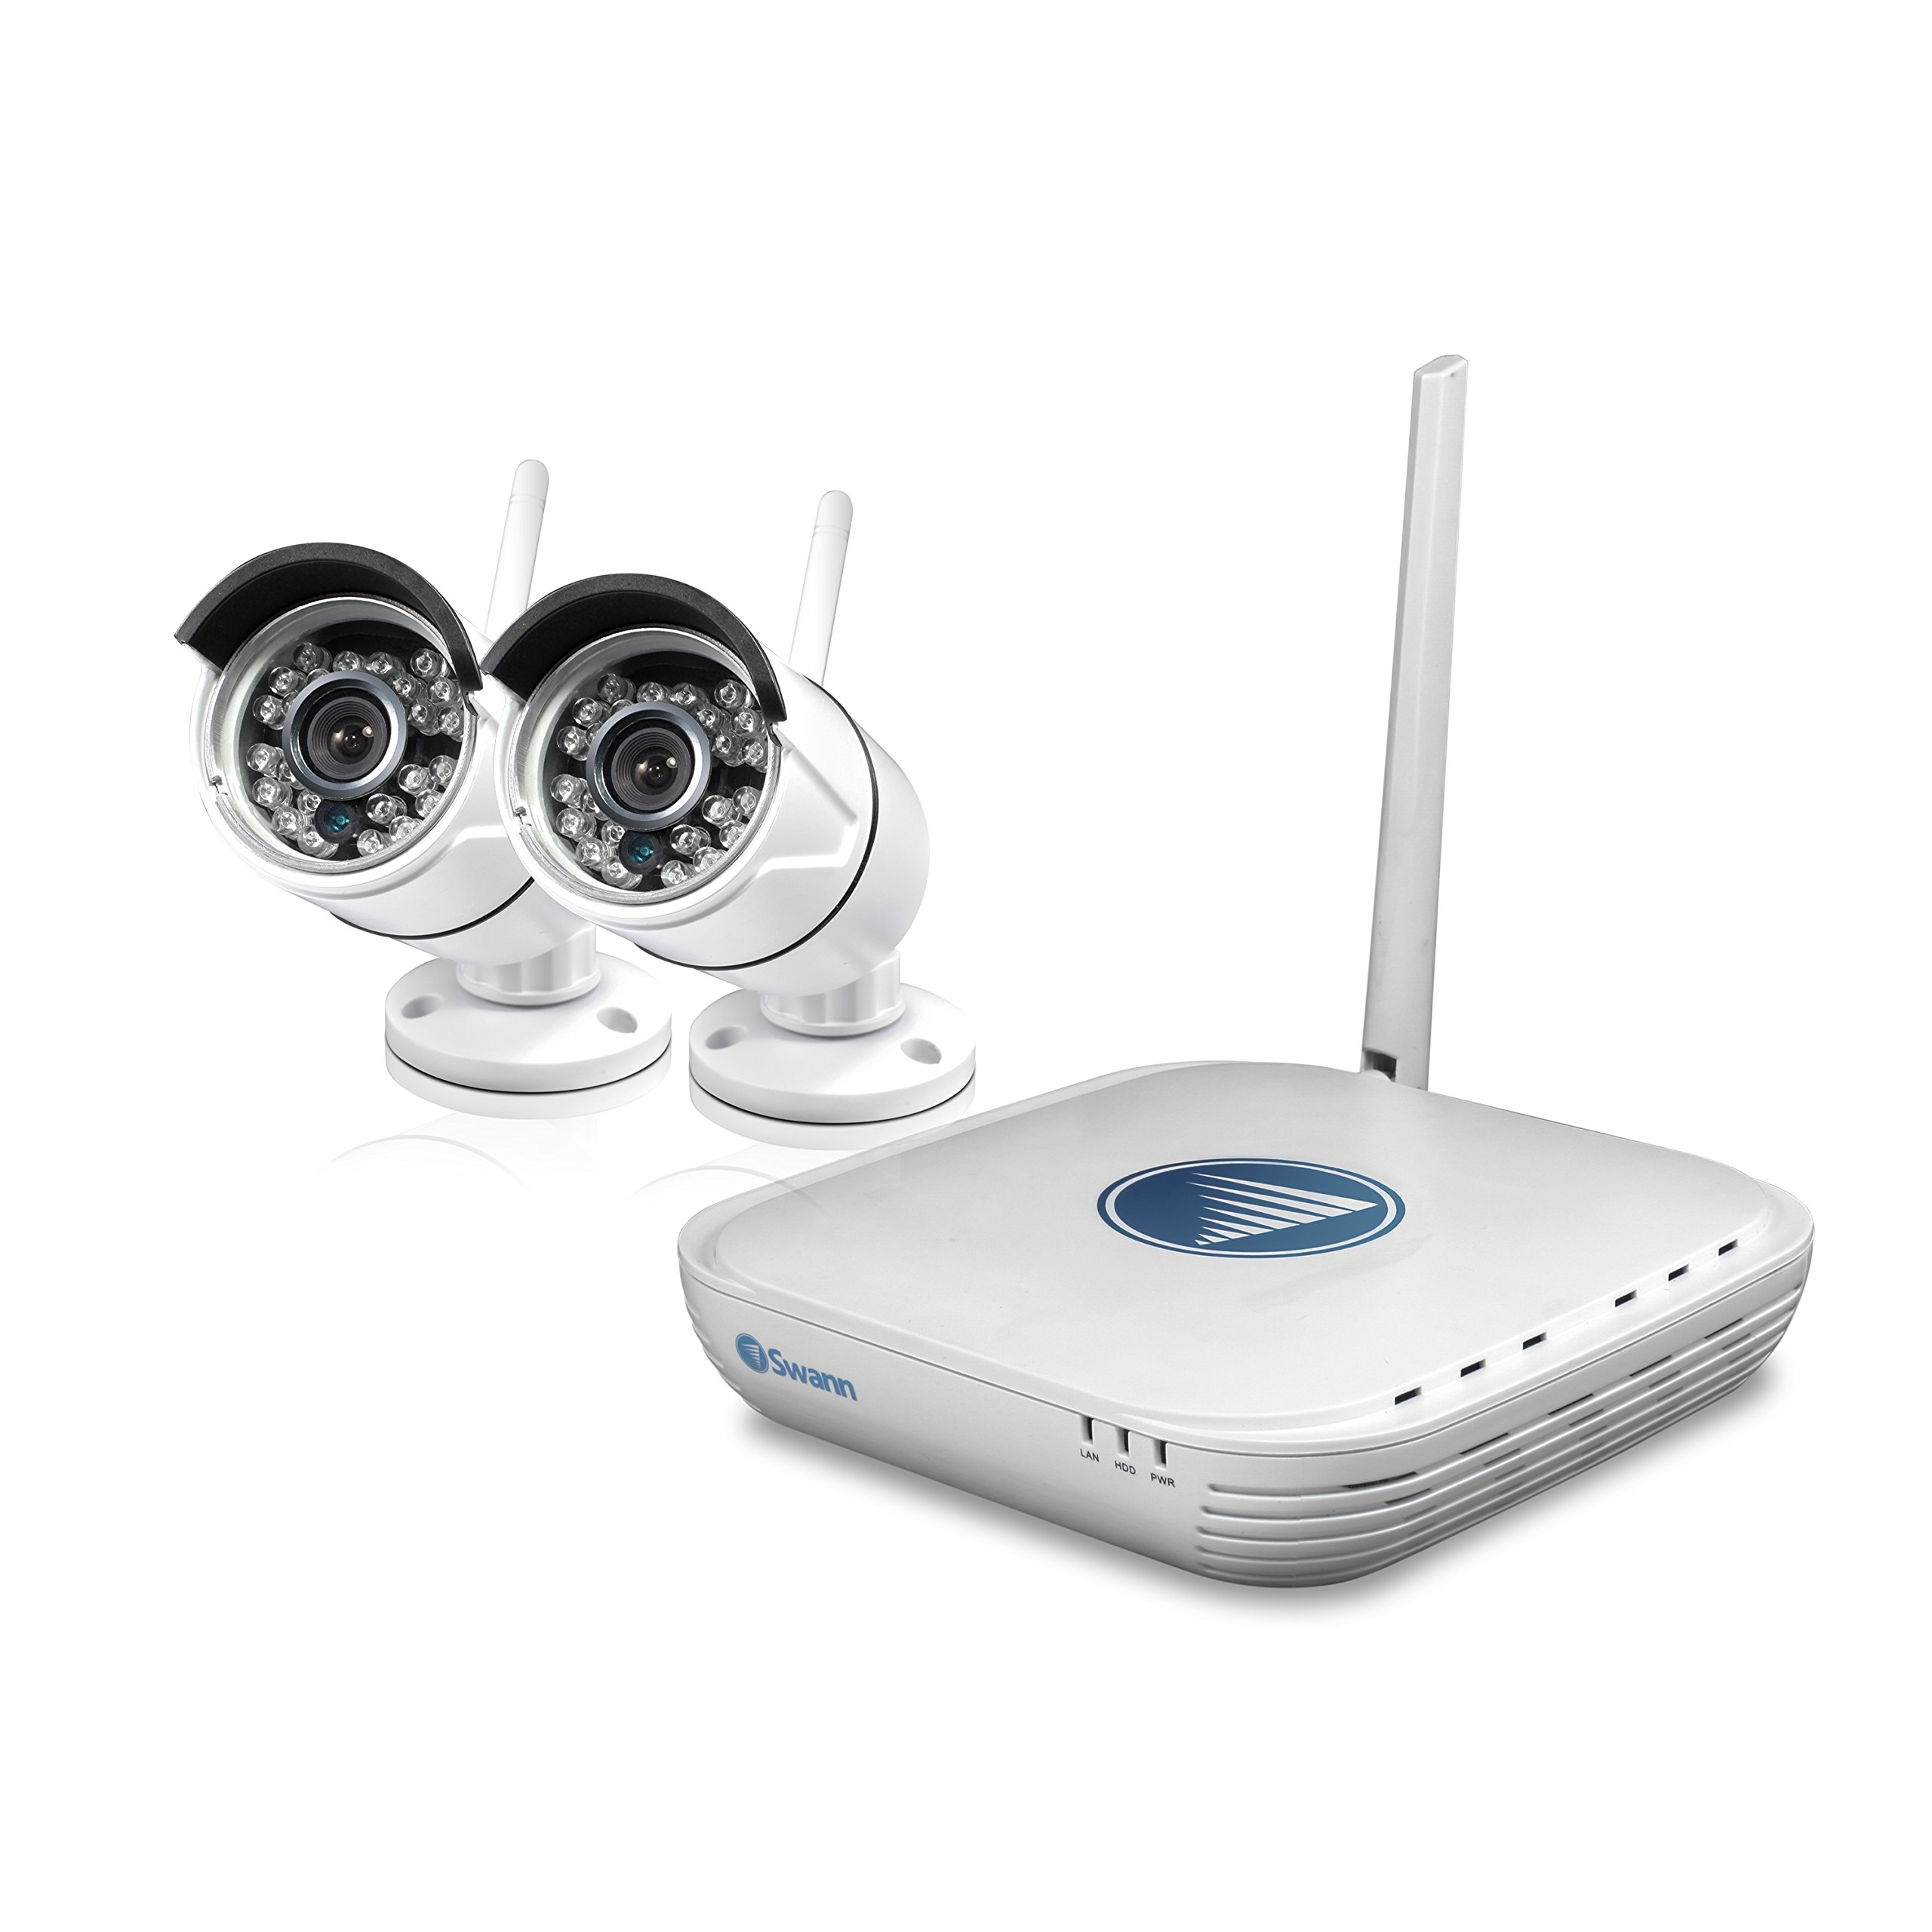 Swann SWNVK-460KH2-US NVK-460 Wi-Fi Security Kit (White) by Swann